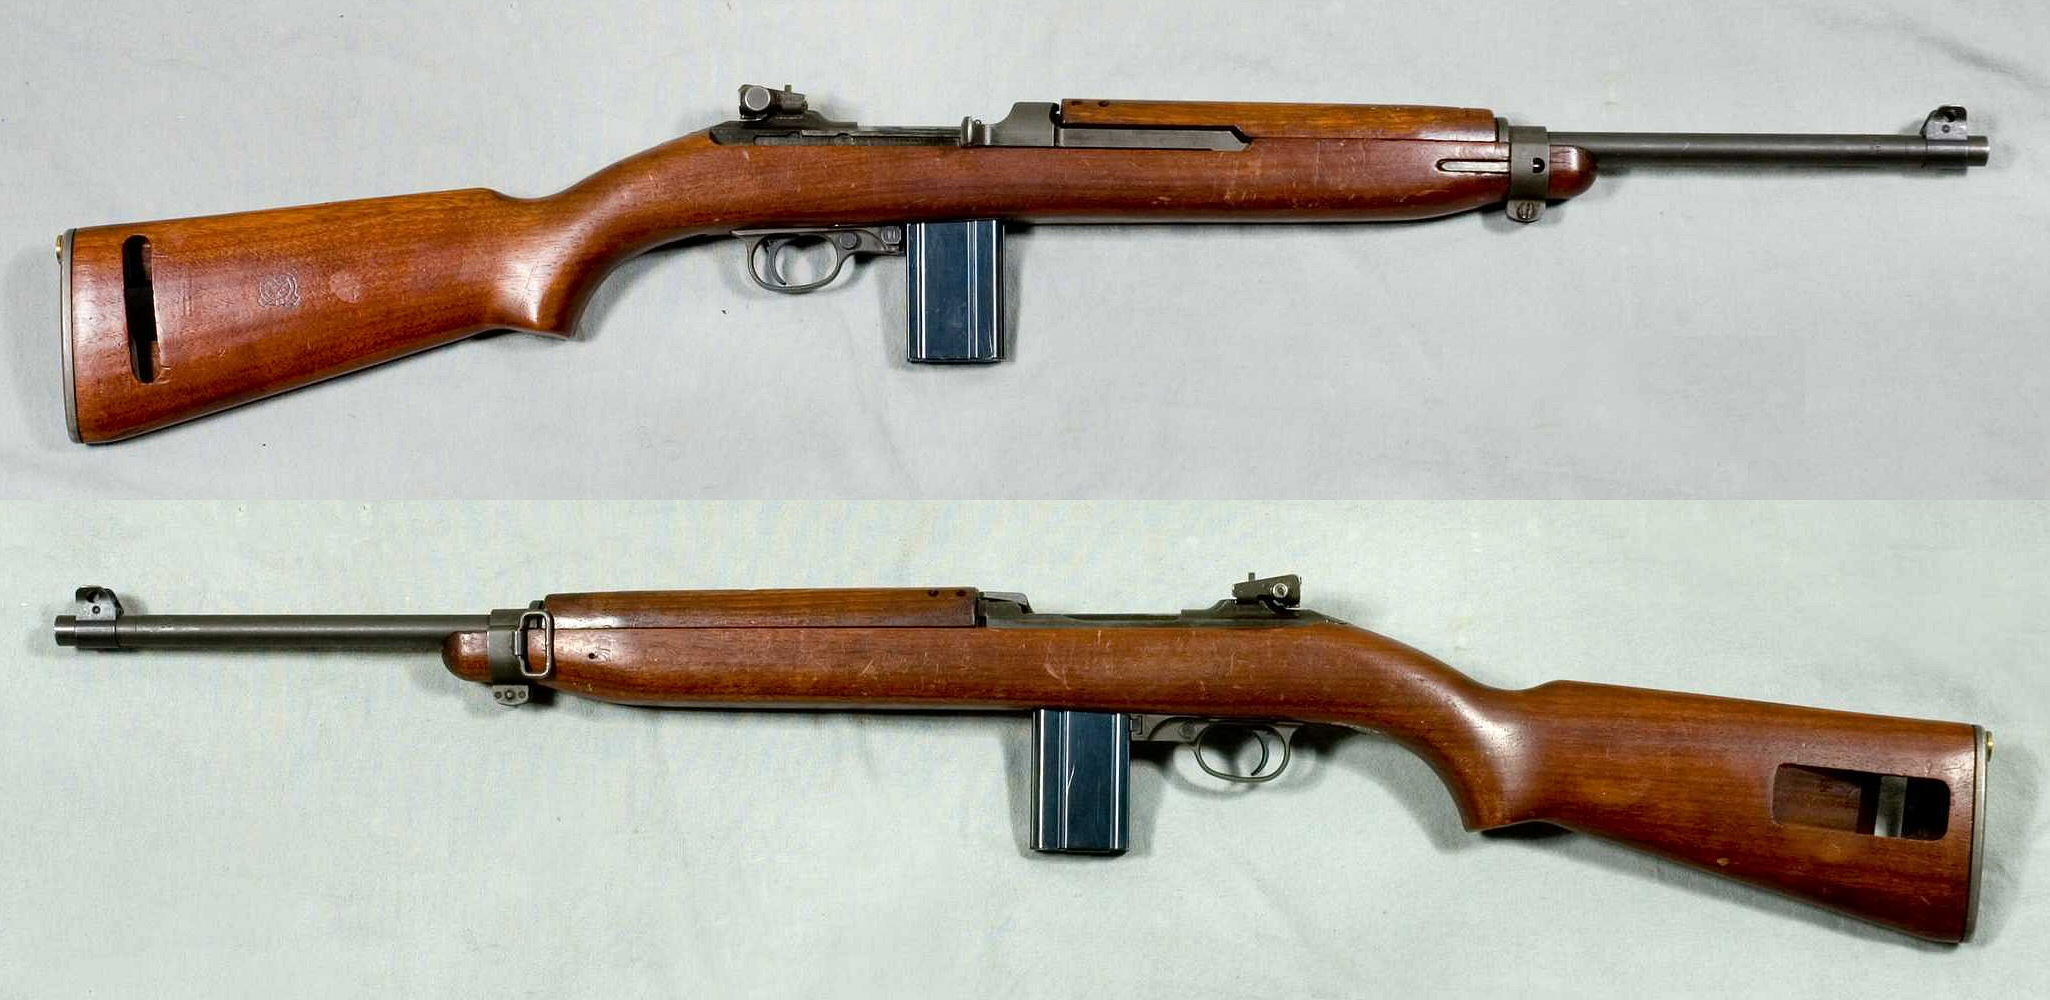 https://upload.wikimedia.org/wikipedia/commons/9/9b/M1_Carbine_Mk_I_-_USA_-_Arm%C3%A9museum.jpg